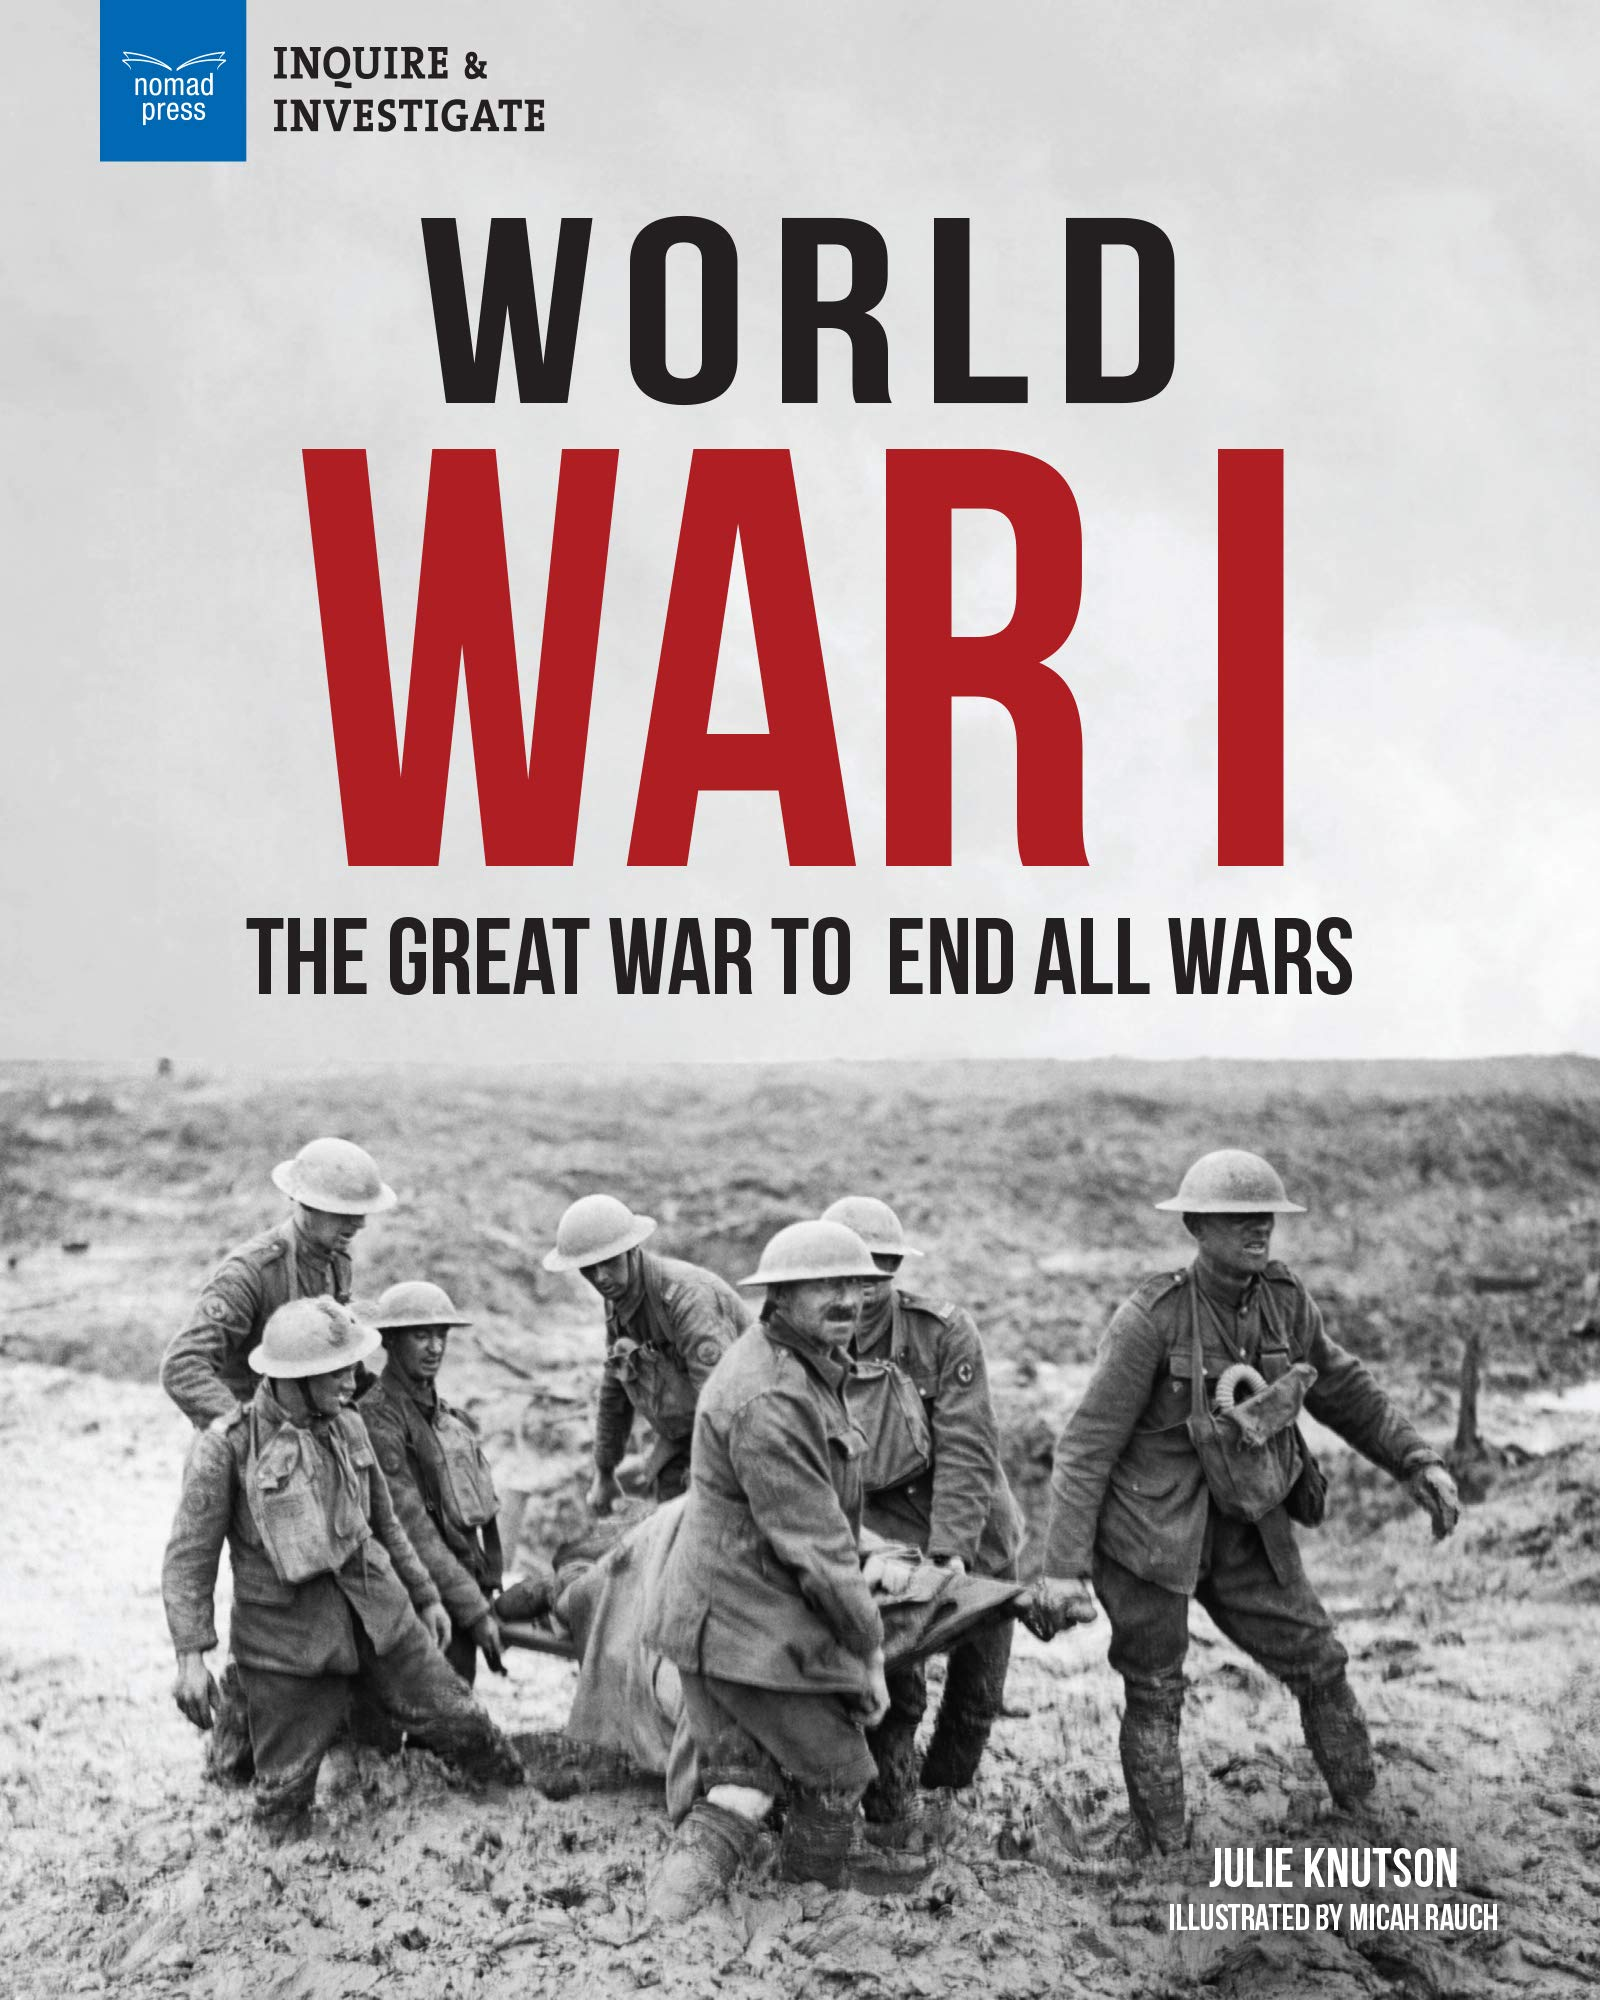 World War I: The Great War To End All Wars